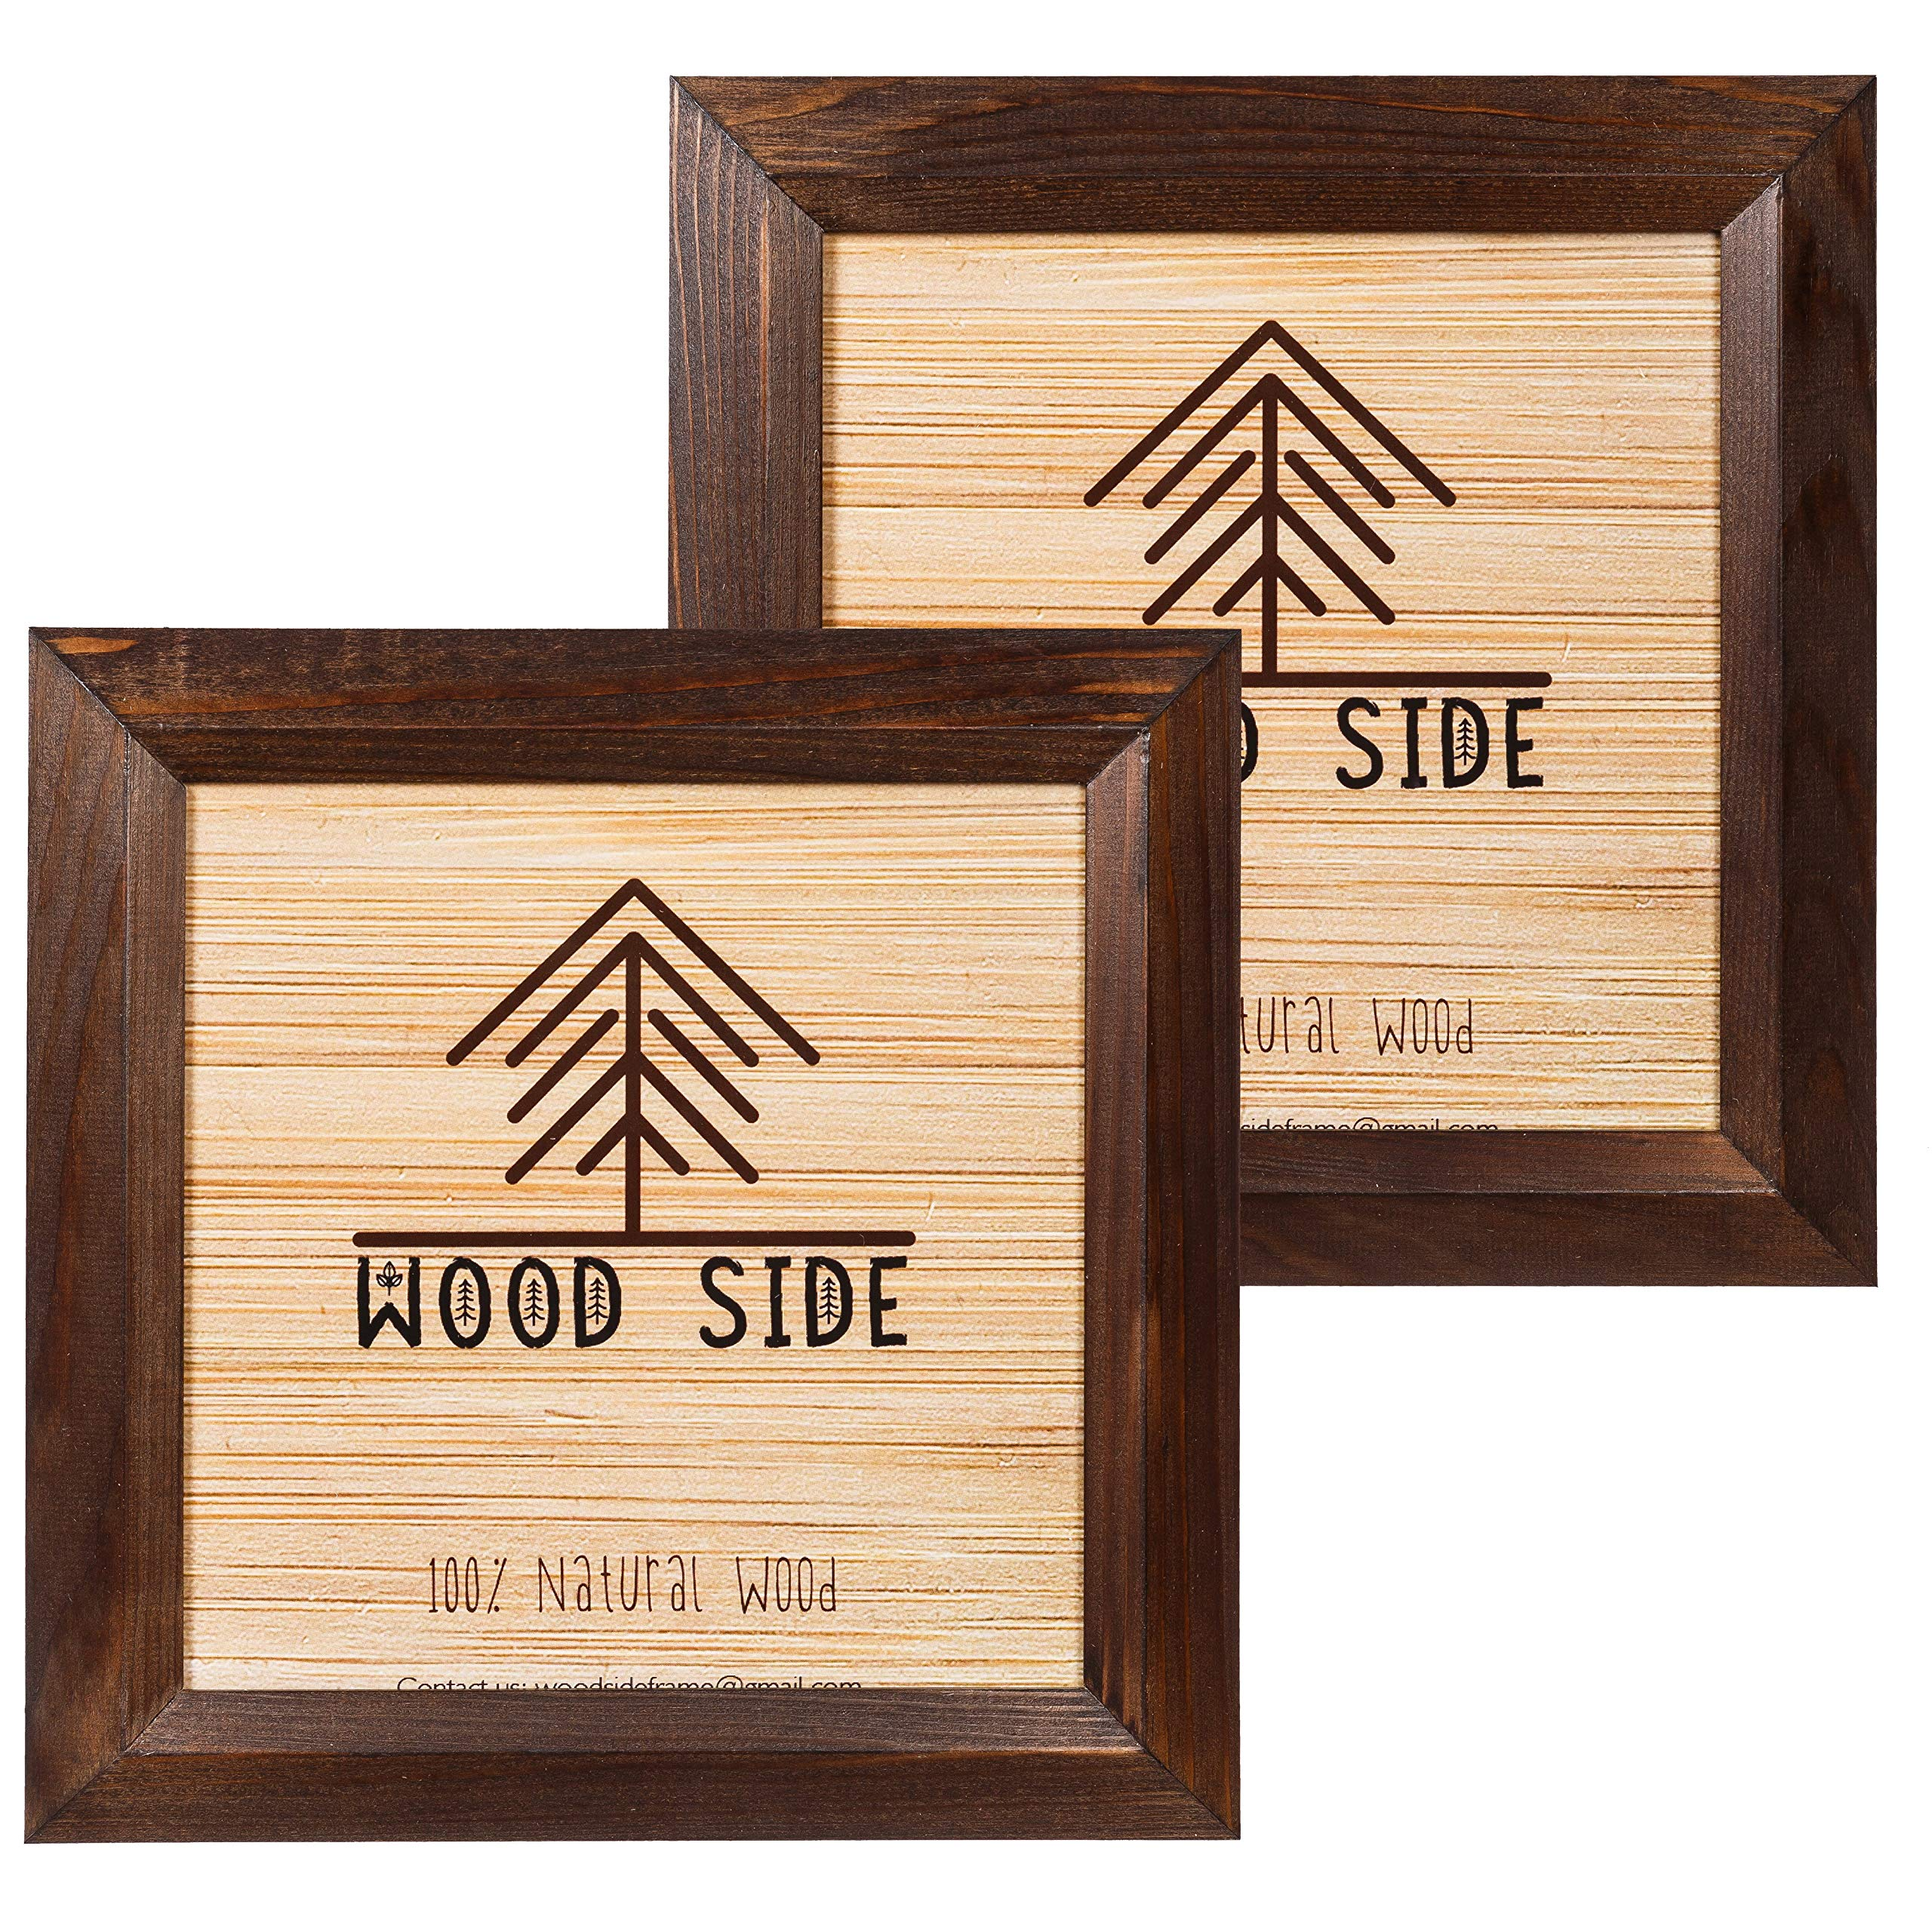 8x8 Wooden Square Picture Frames Brown - Pack of 2 - Rustic Frame Made of Solid Wood Finish Beveled Profile for Wall Mounting Photo Frame by Wood Side